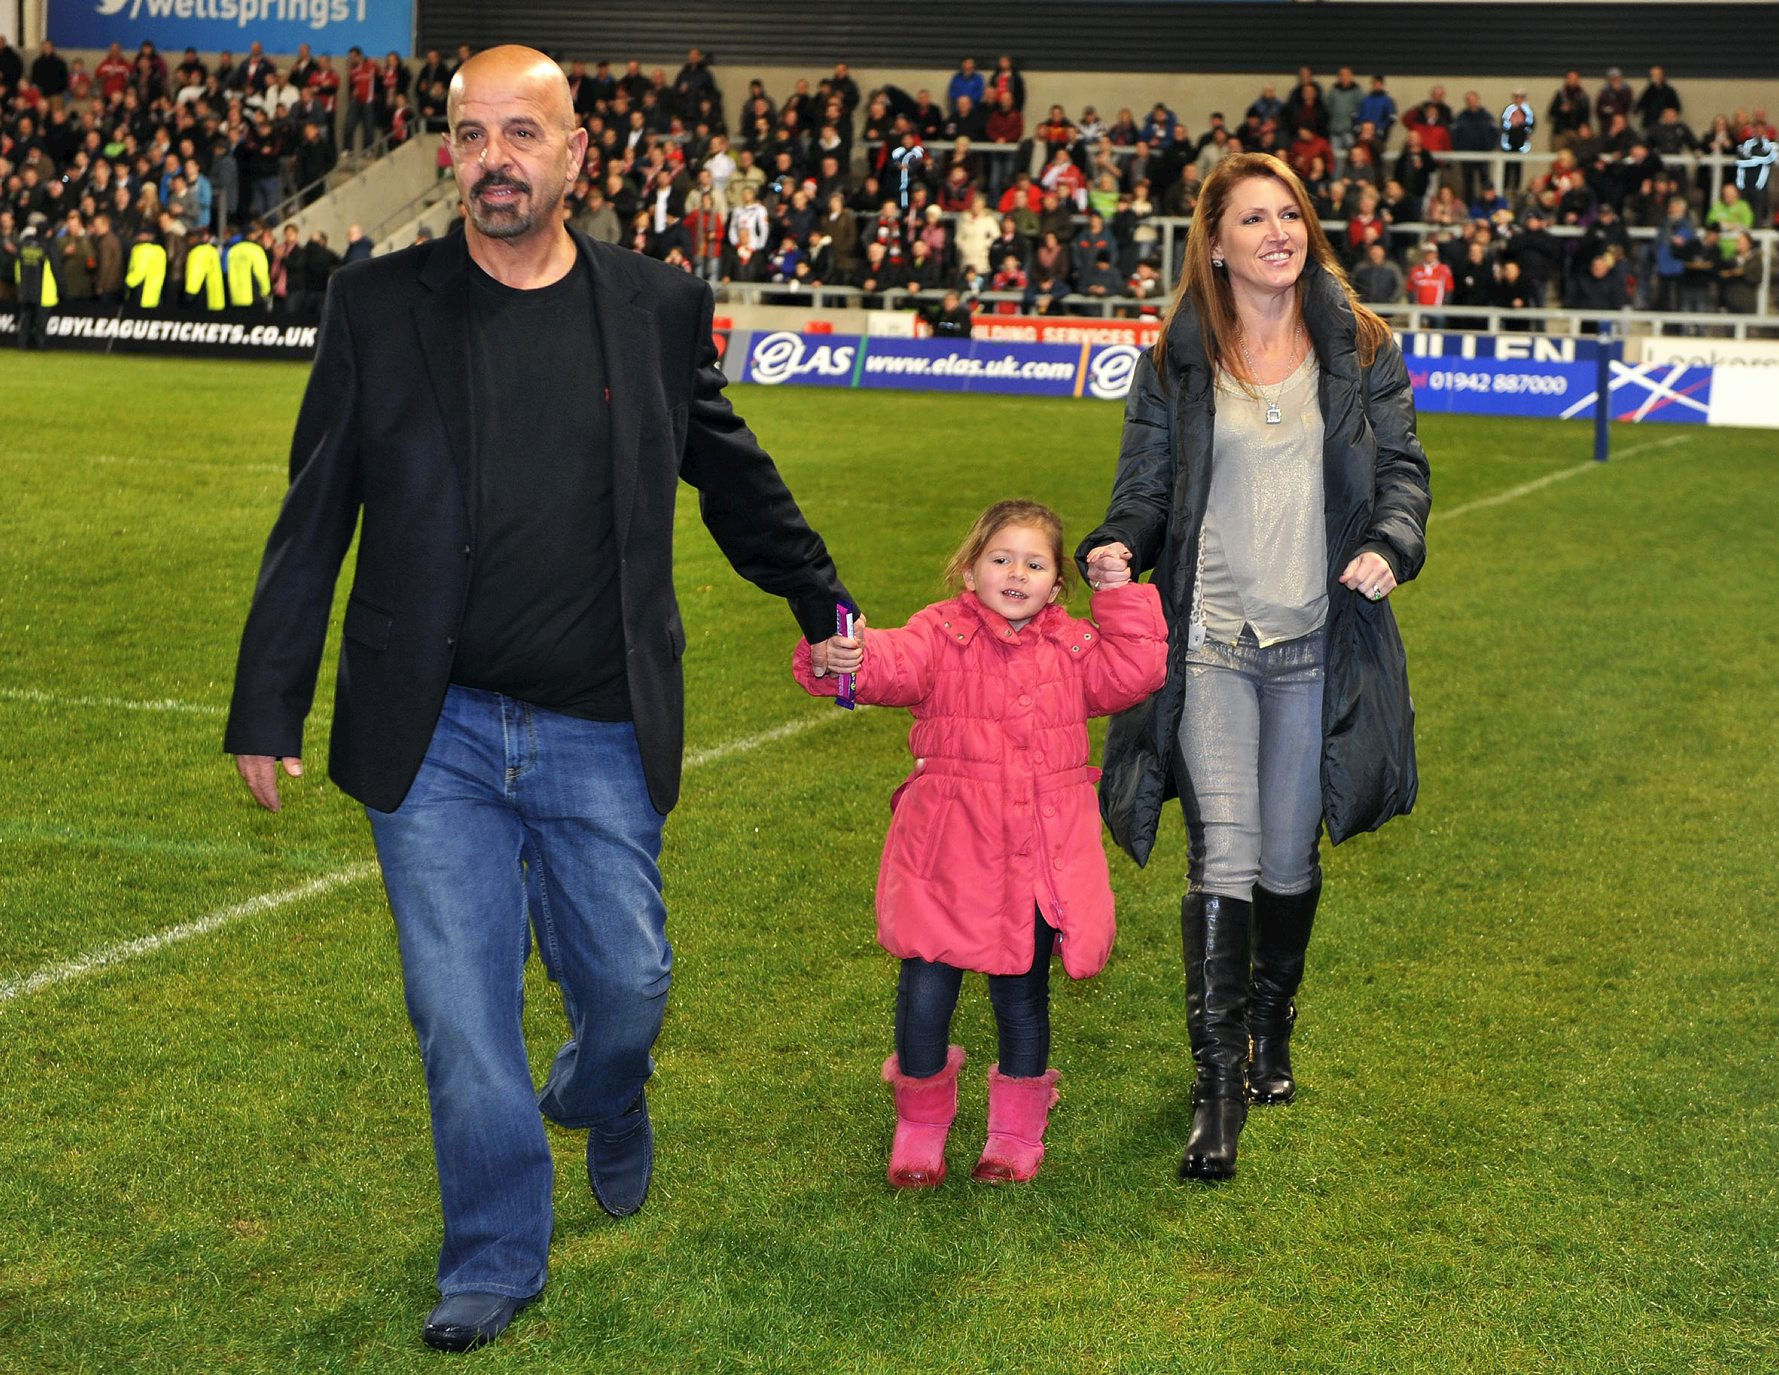 Dr Marwan Koukash and his wife Mandy